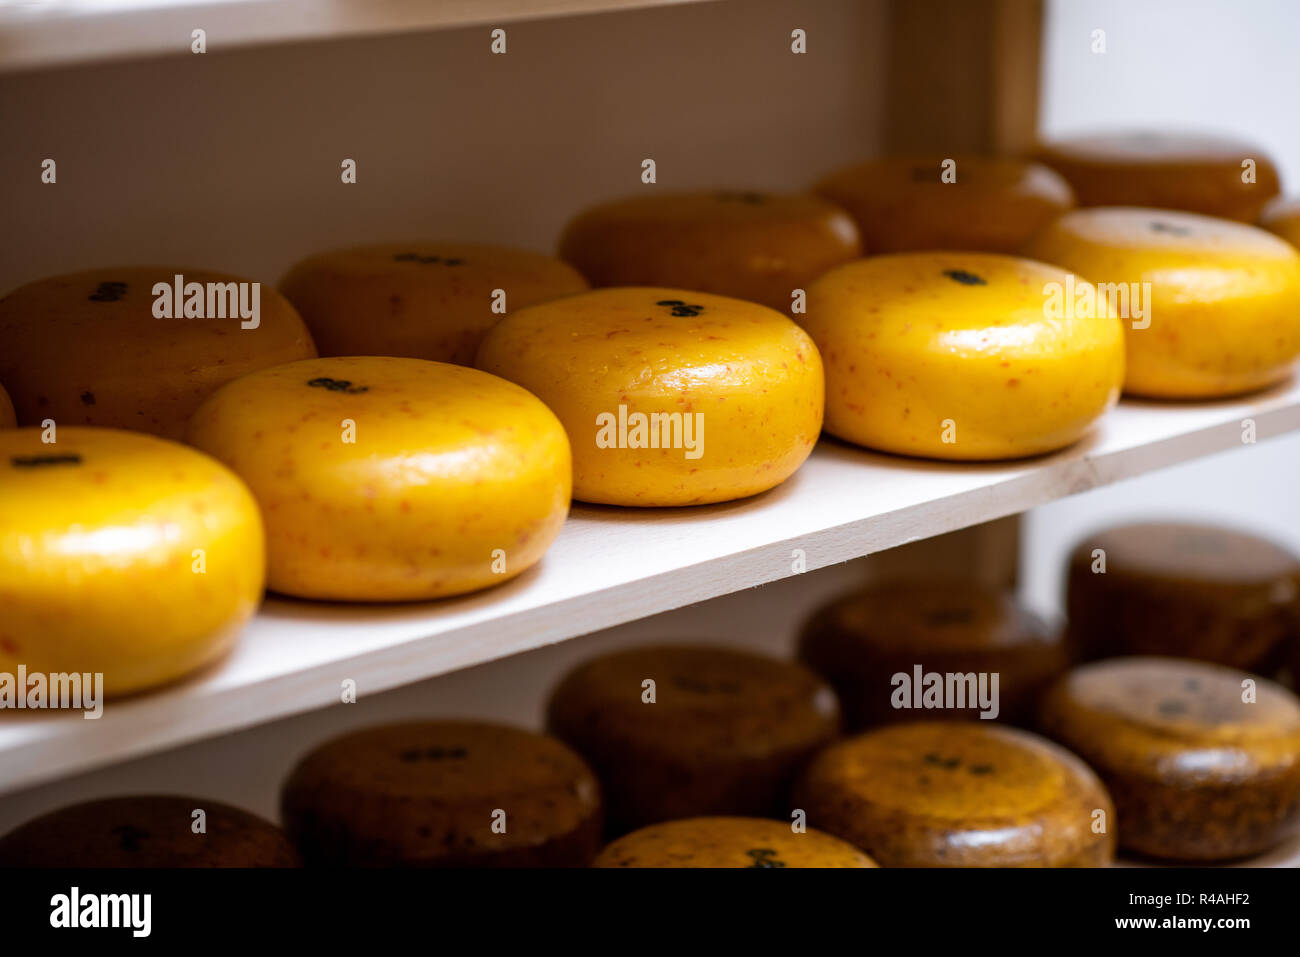 Cheese wheels on the shelf of the storage during the aging process - Stock Image